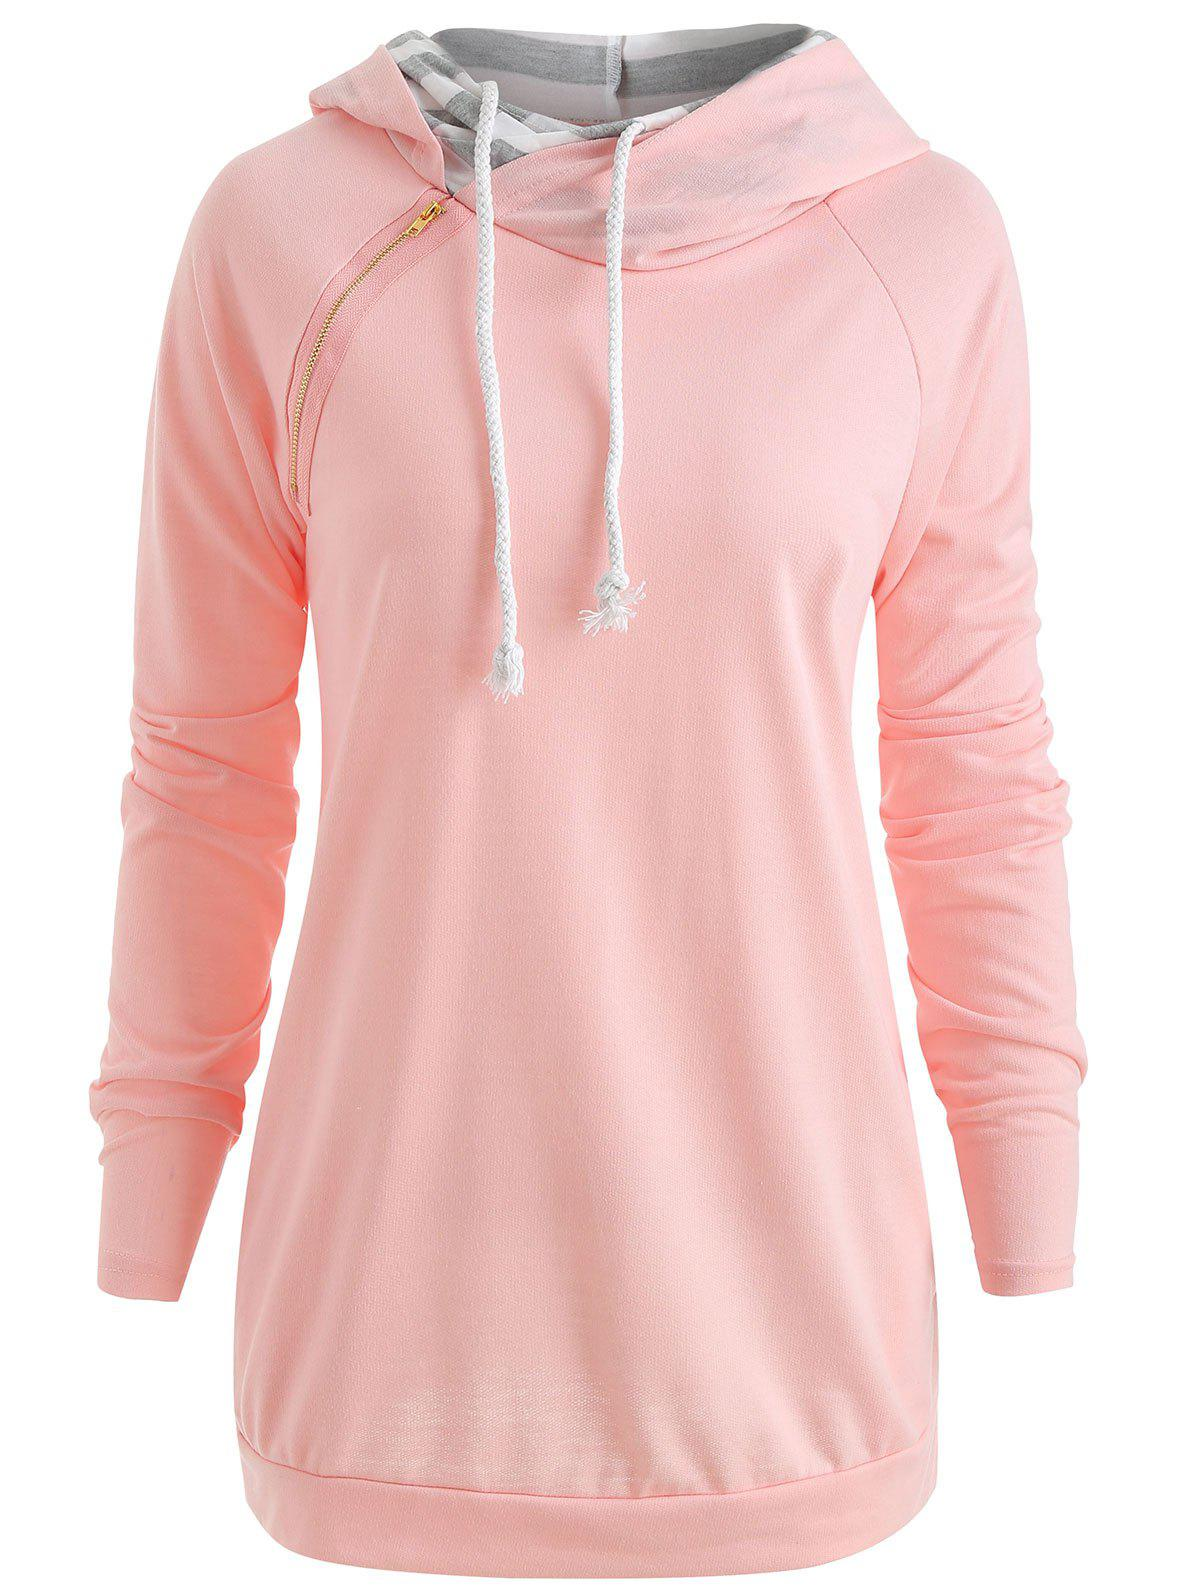 Sweat à Double Capuche à Manches Raglan Rose L